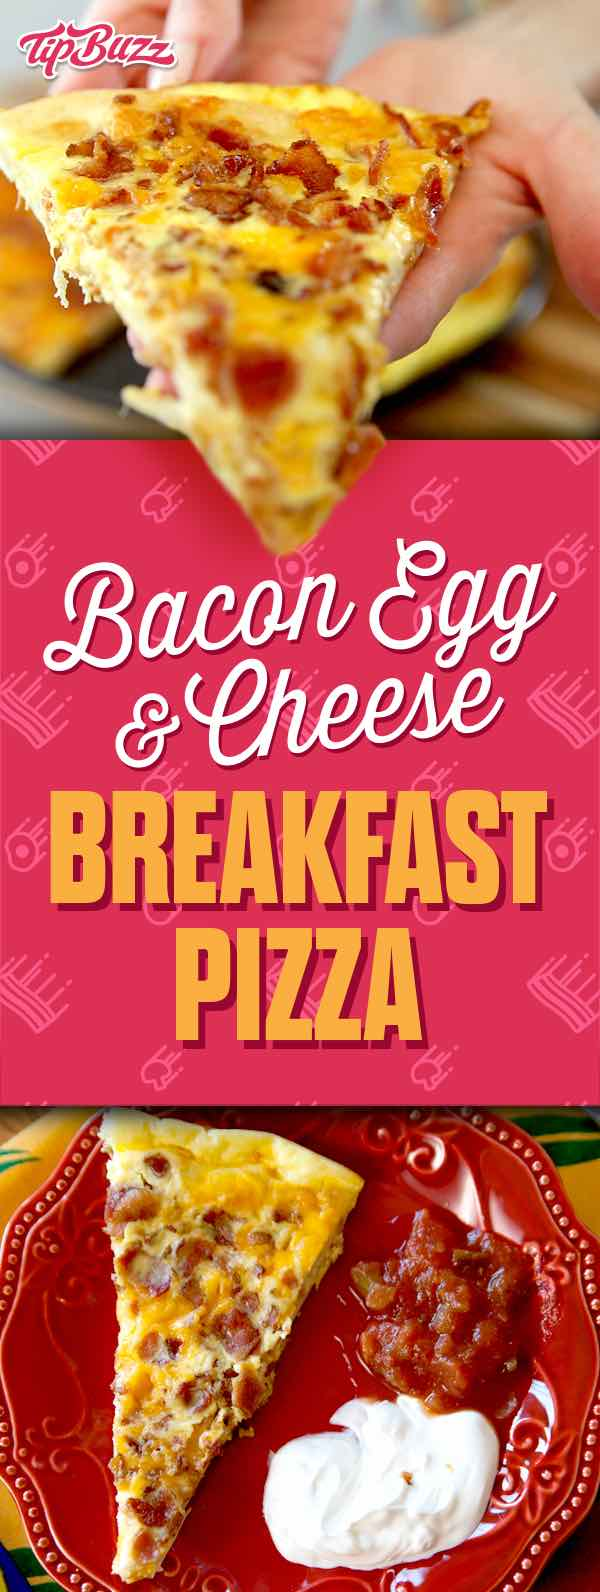 Bacon Egg & Cheese breakfast pizza. It's so easy! All you need is refrigerated pizza dough, eggs, bacon and cheese. Perfect for brunch at home. Video recipe | tipbuzz.com